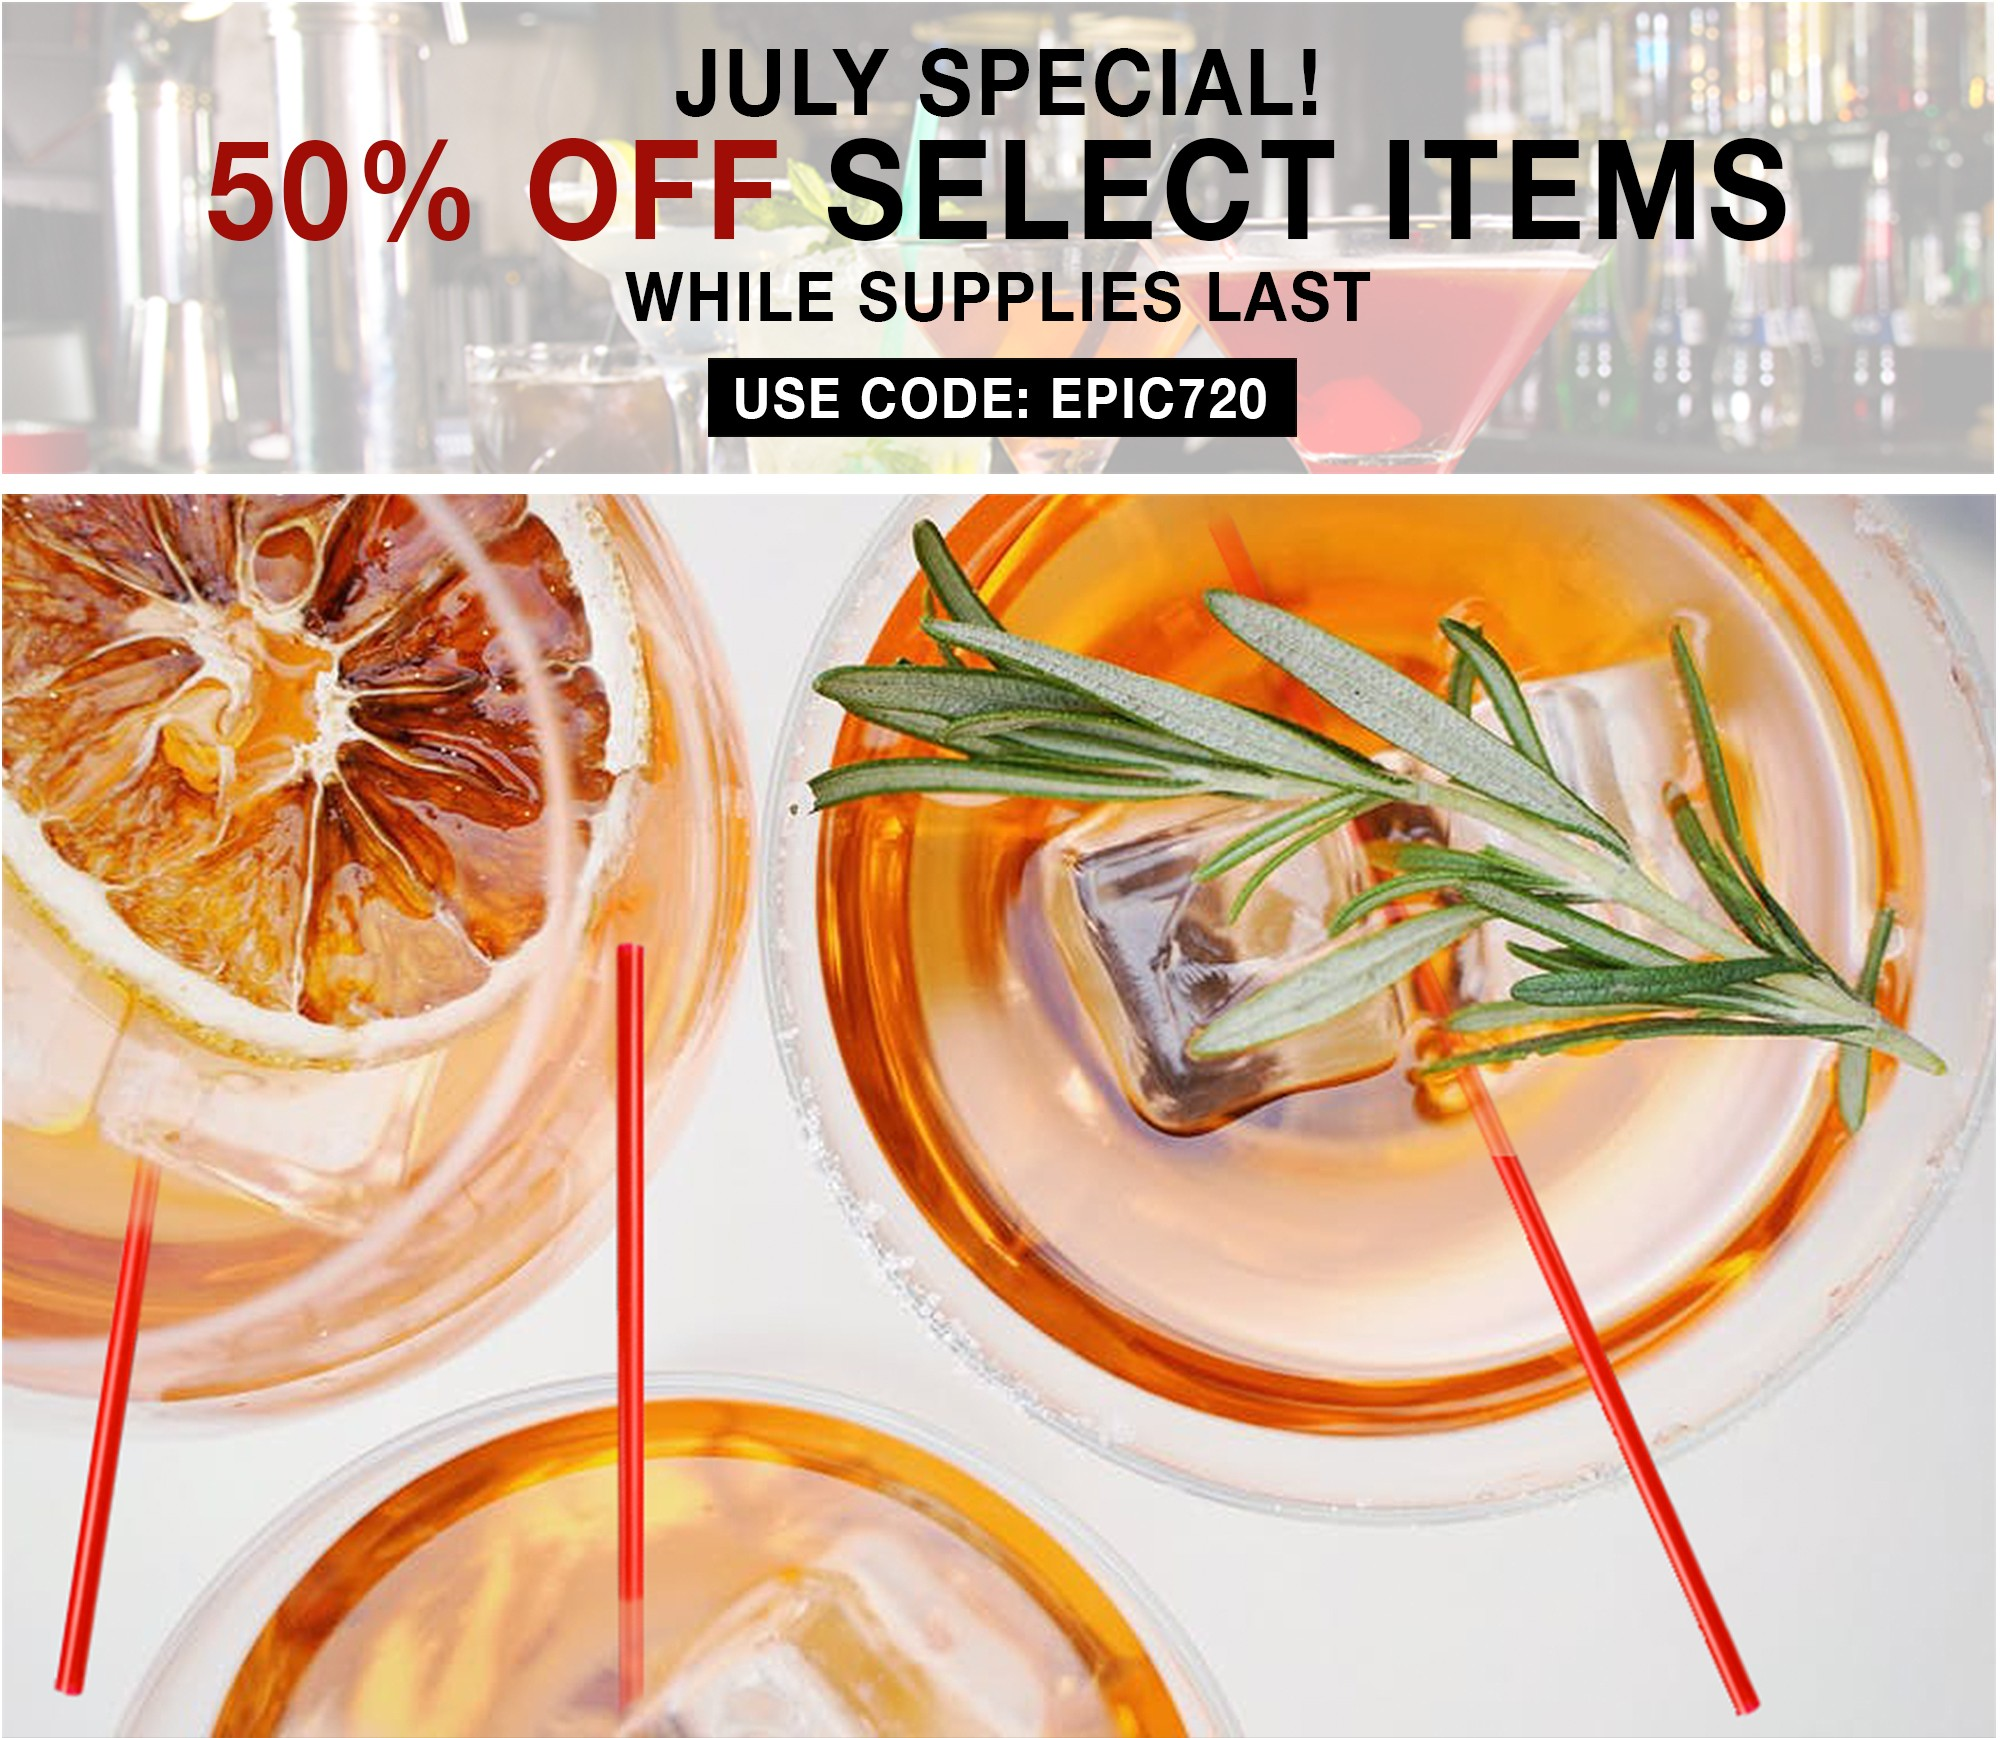 June Special - 50% Off Select Items - While Supplies Last! Use Code: EPIC720